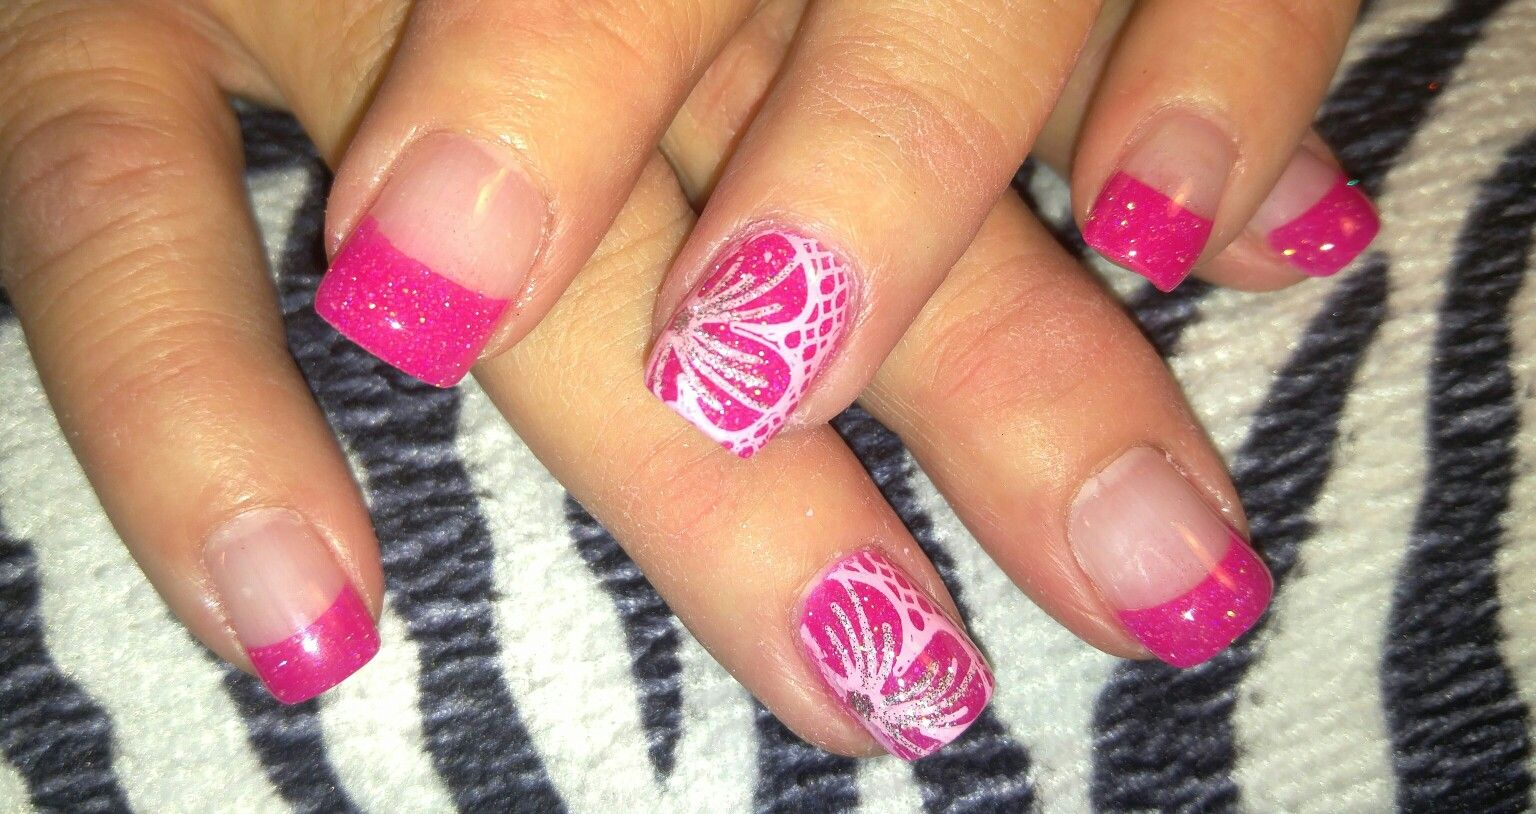 Floral Hot Pink French Tip Nails Acrylic French Tips With Stamped And Free Hand Nail Art On Ring Fingers And Gel Top Coat Nail Art French Tip Nails Nails